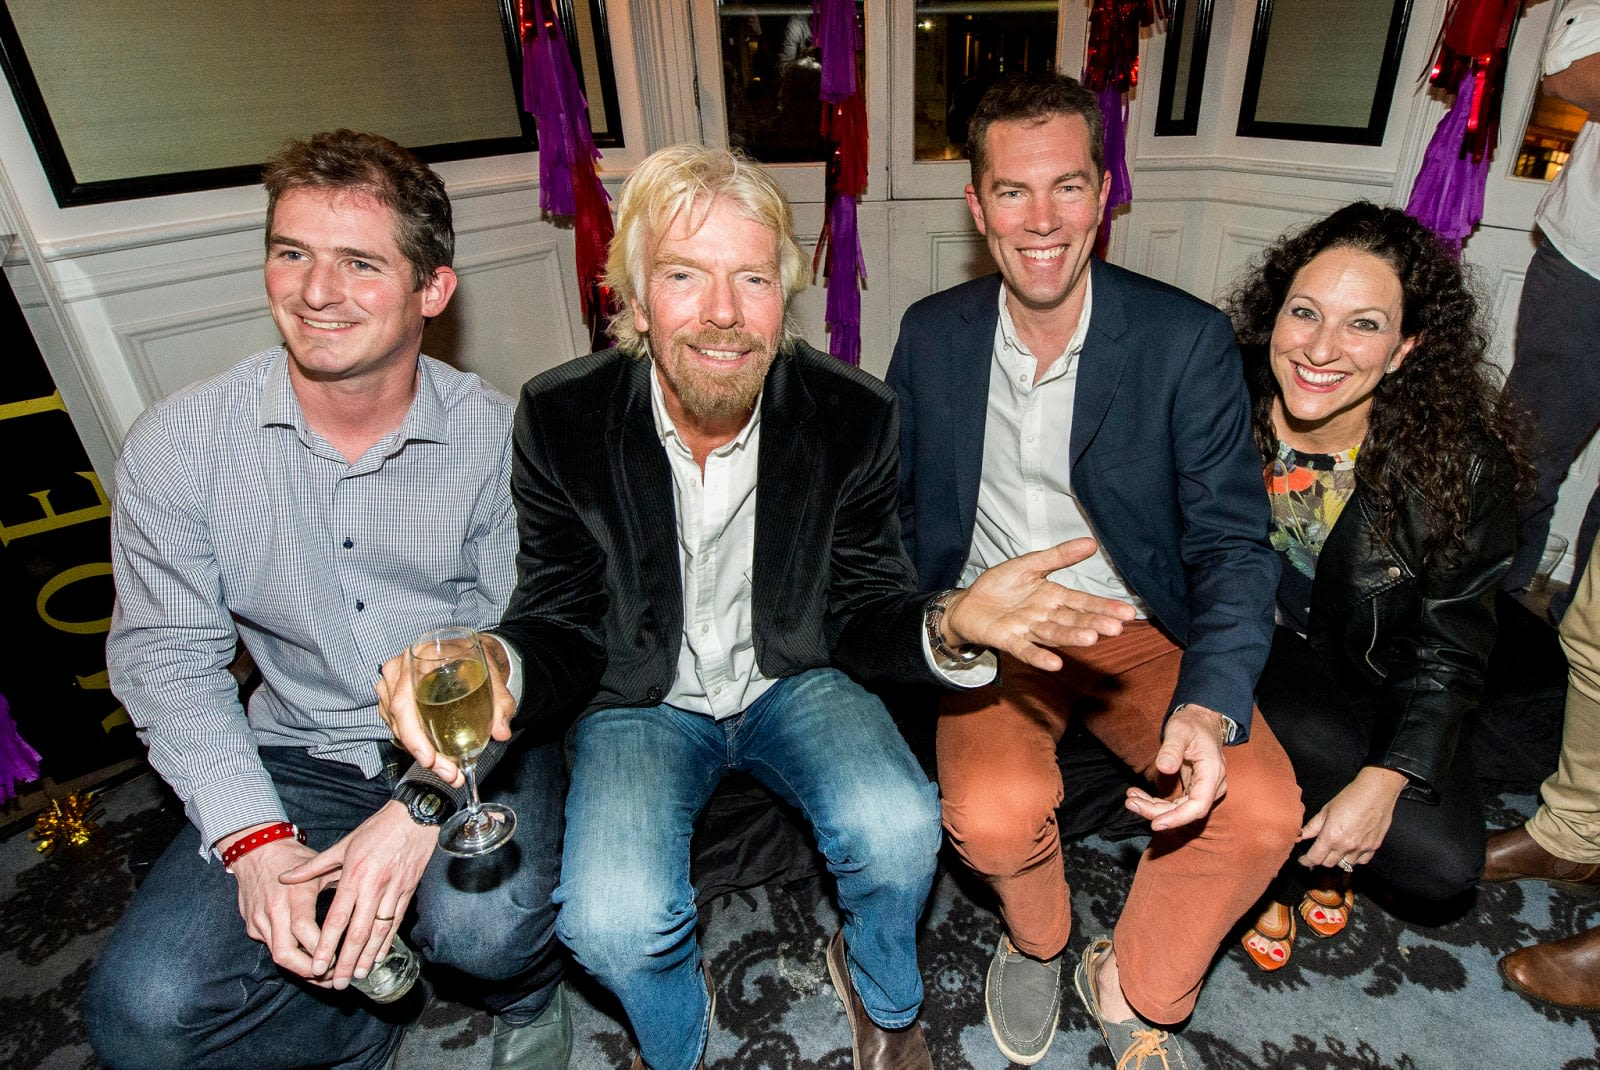 Richard Branson with members of the Virgin Australia team